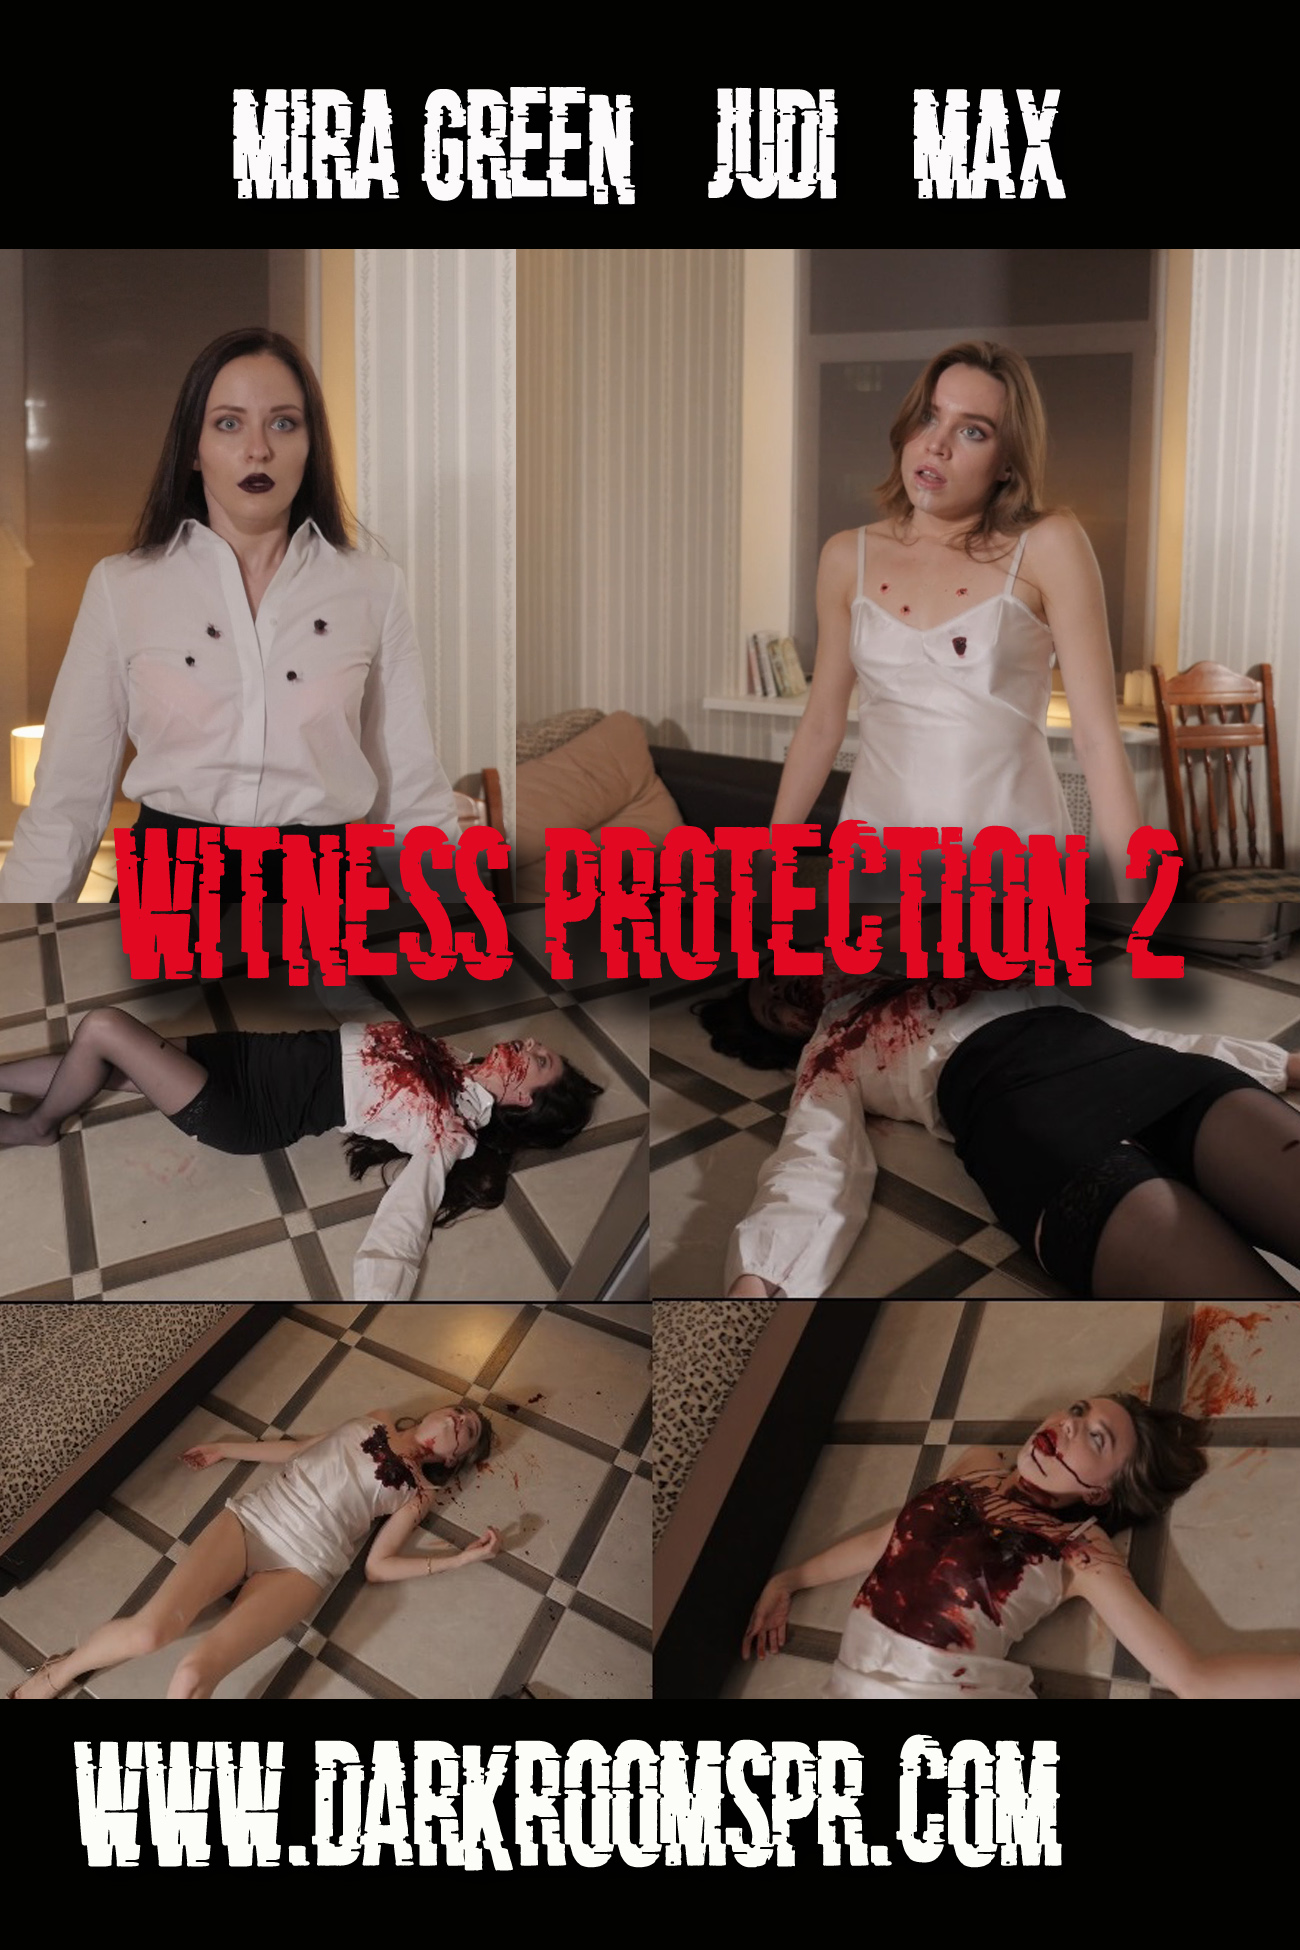 WITNESS PROTECTION 2